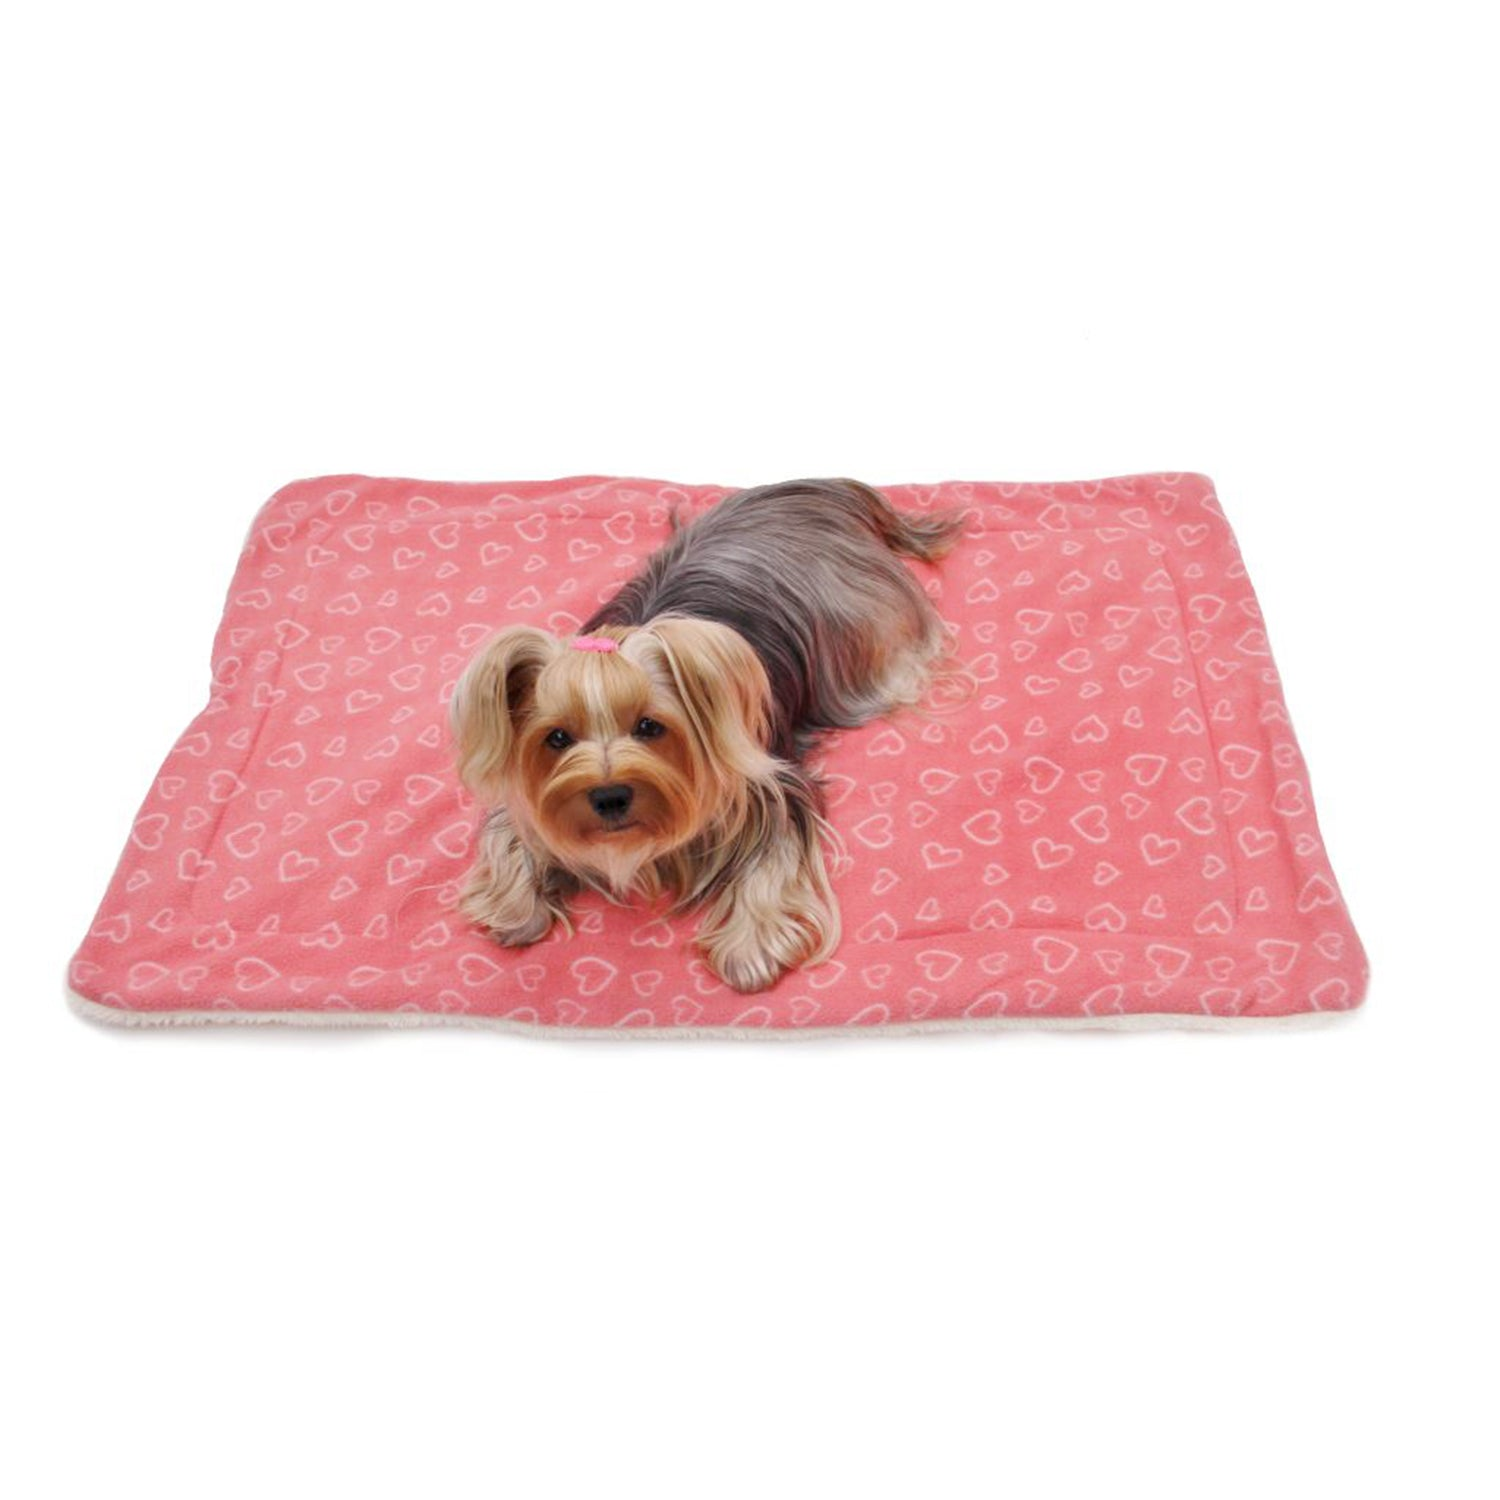 Blush of Love Fleece/Ultra-Plush Blanket